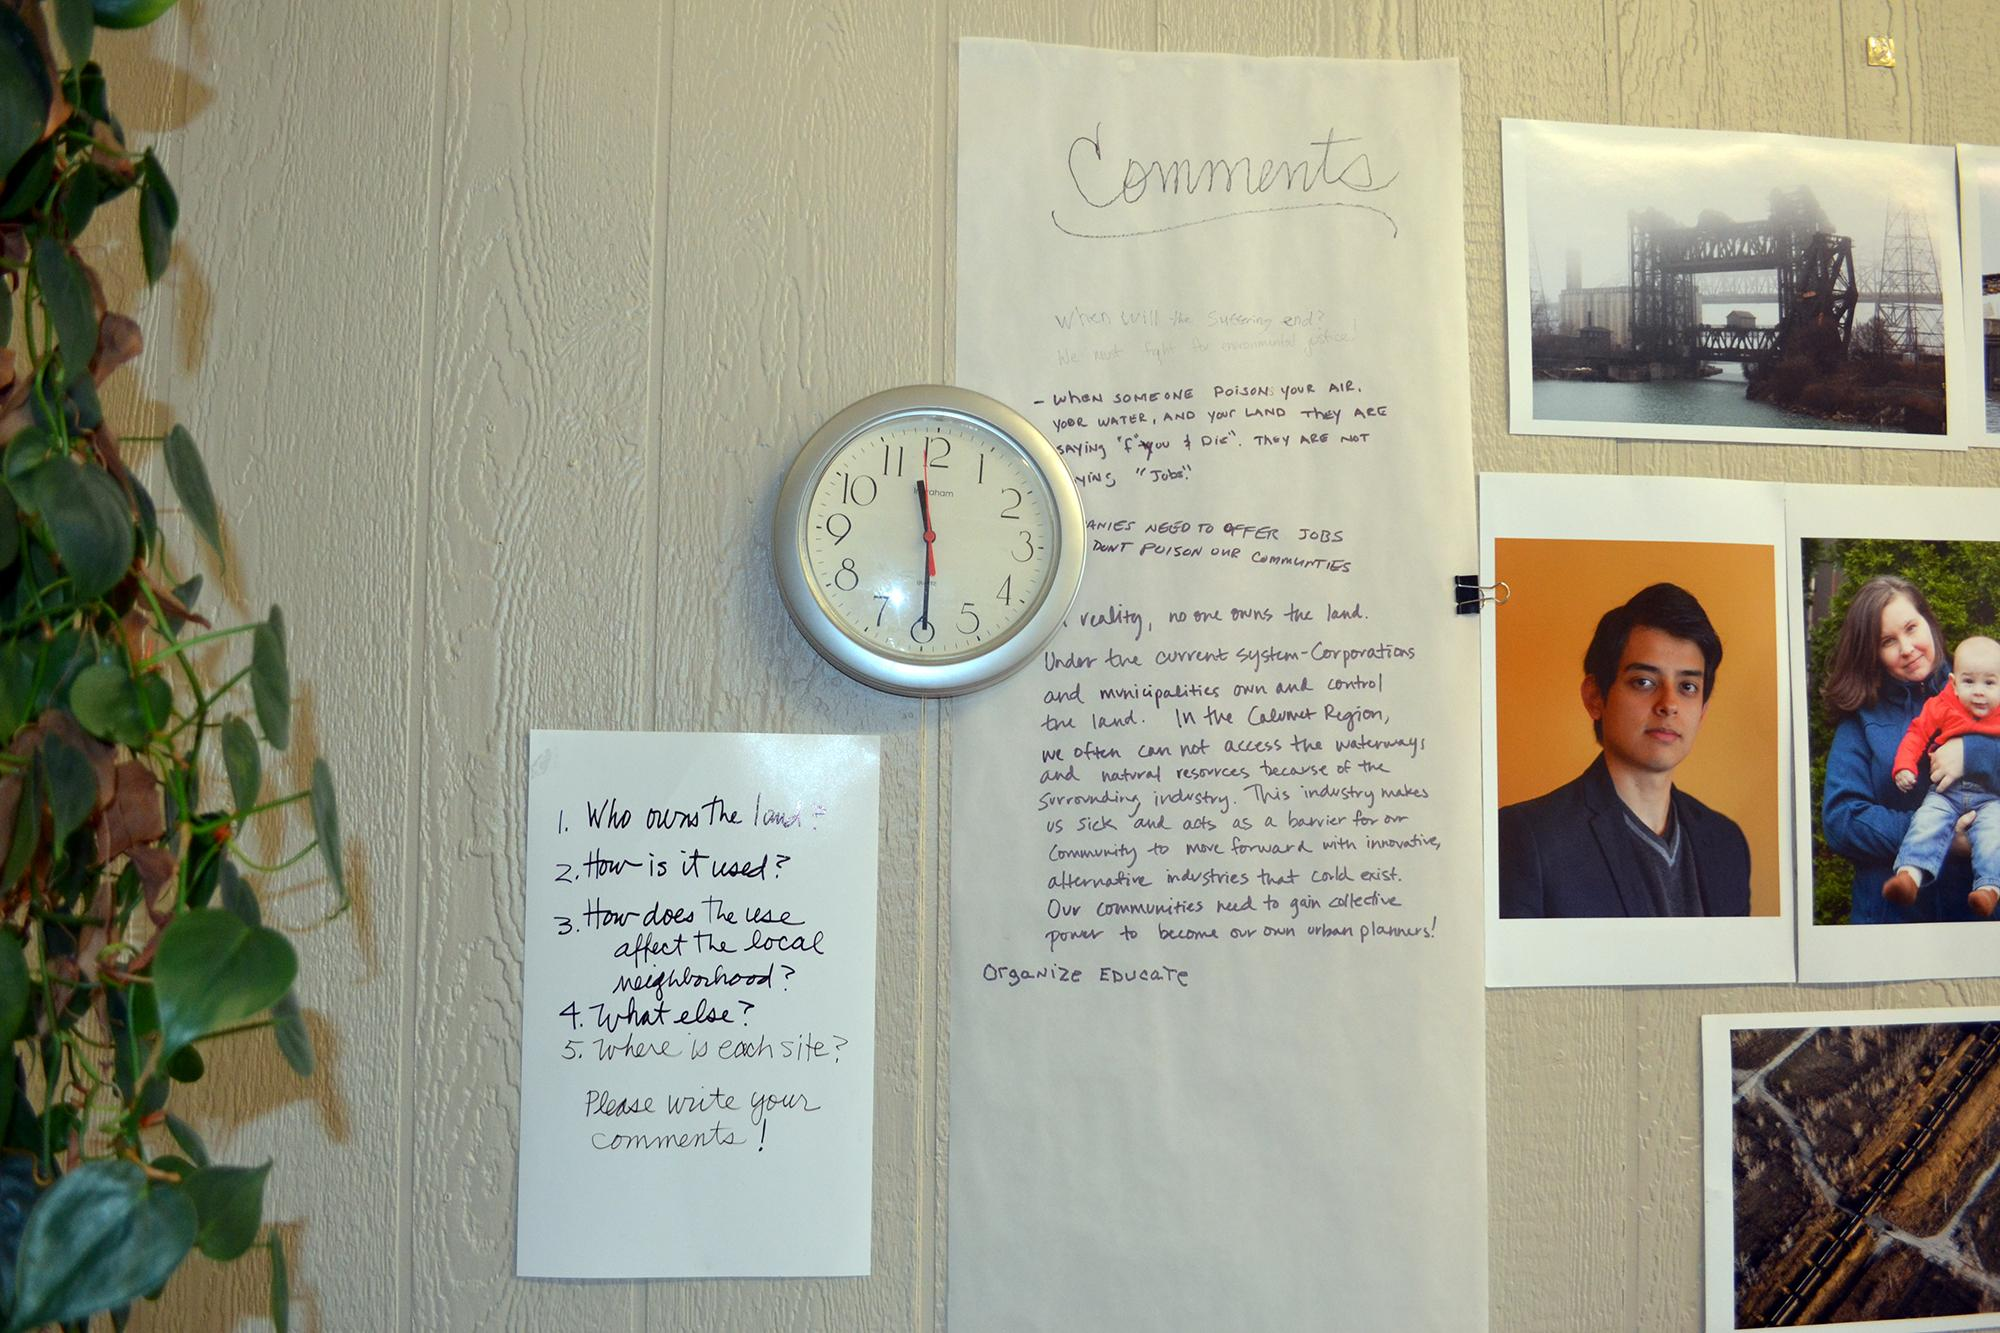 Question and comment sheets hang on the walls at Southeast Environmental Task Force's Hegewisch office. (Alex Ruppenthal / Chicago Tonight)